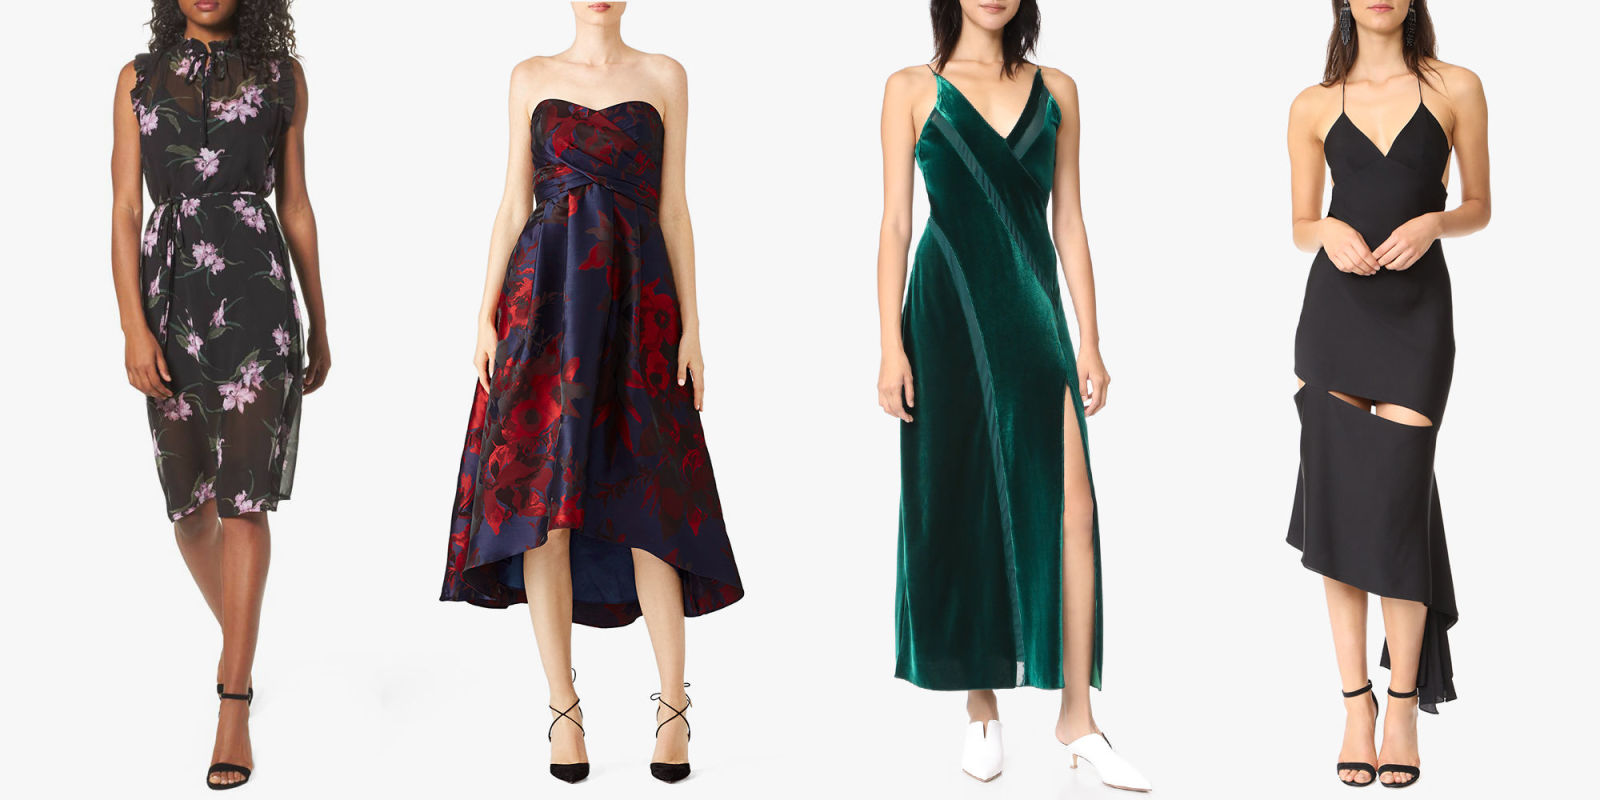 Best Wedding Guest Dresses For Fall Stylish Dresses To